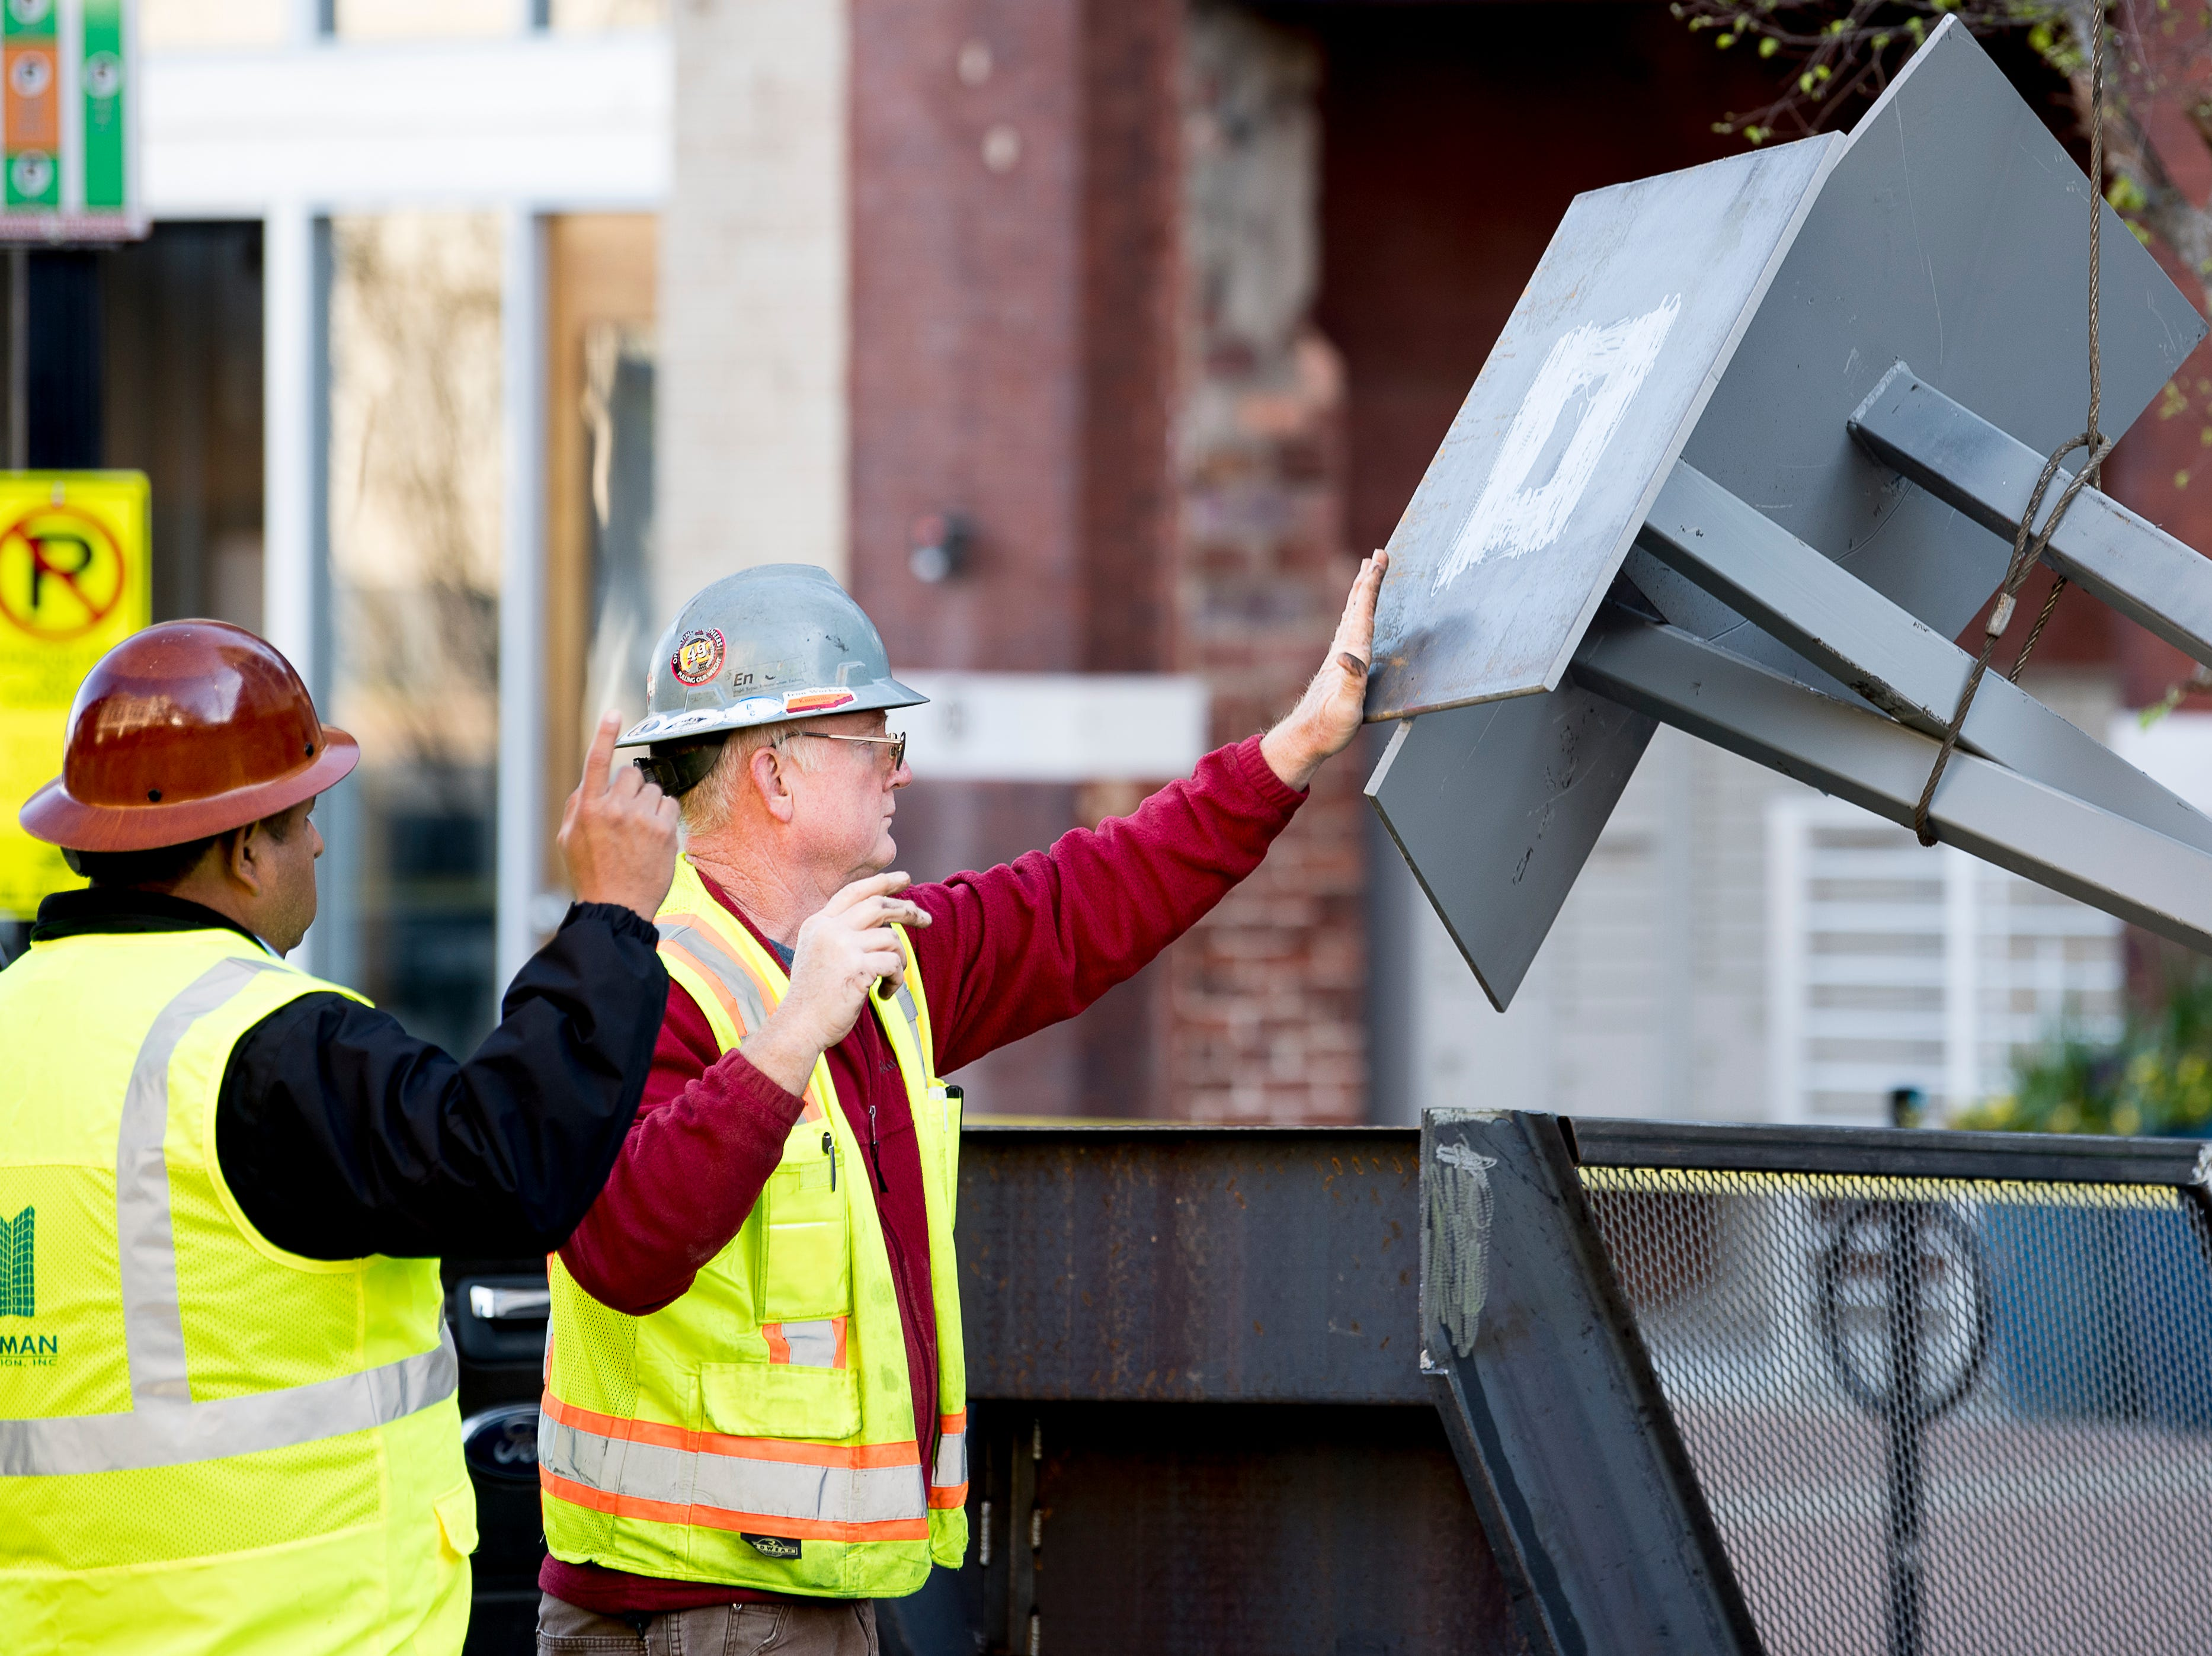 Crews fasten equipment to a crane to hoist to the roof of Sterchi Lofts in Knoxville, Tennessee on Tuesday, April 16, 2019. A new railing costing an estimated $70,000 is being installed to reopen the rooftop patio this summer.